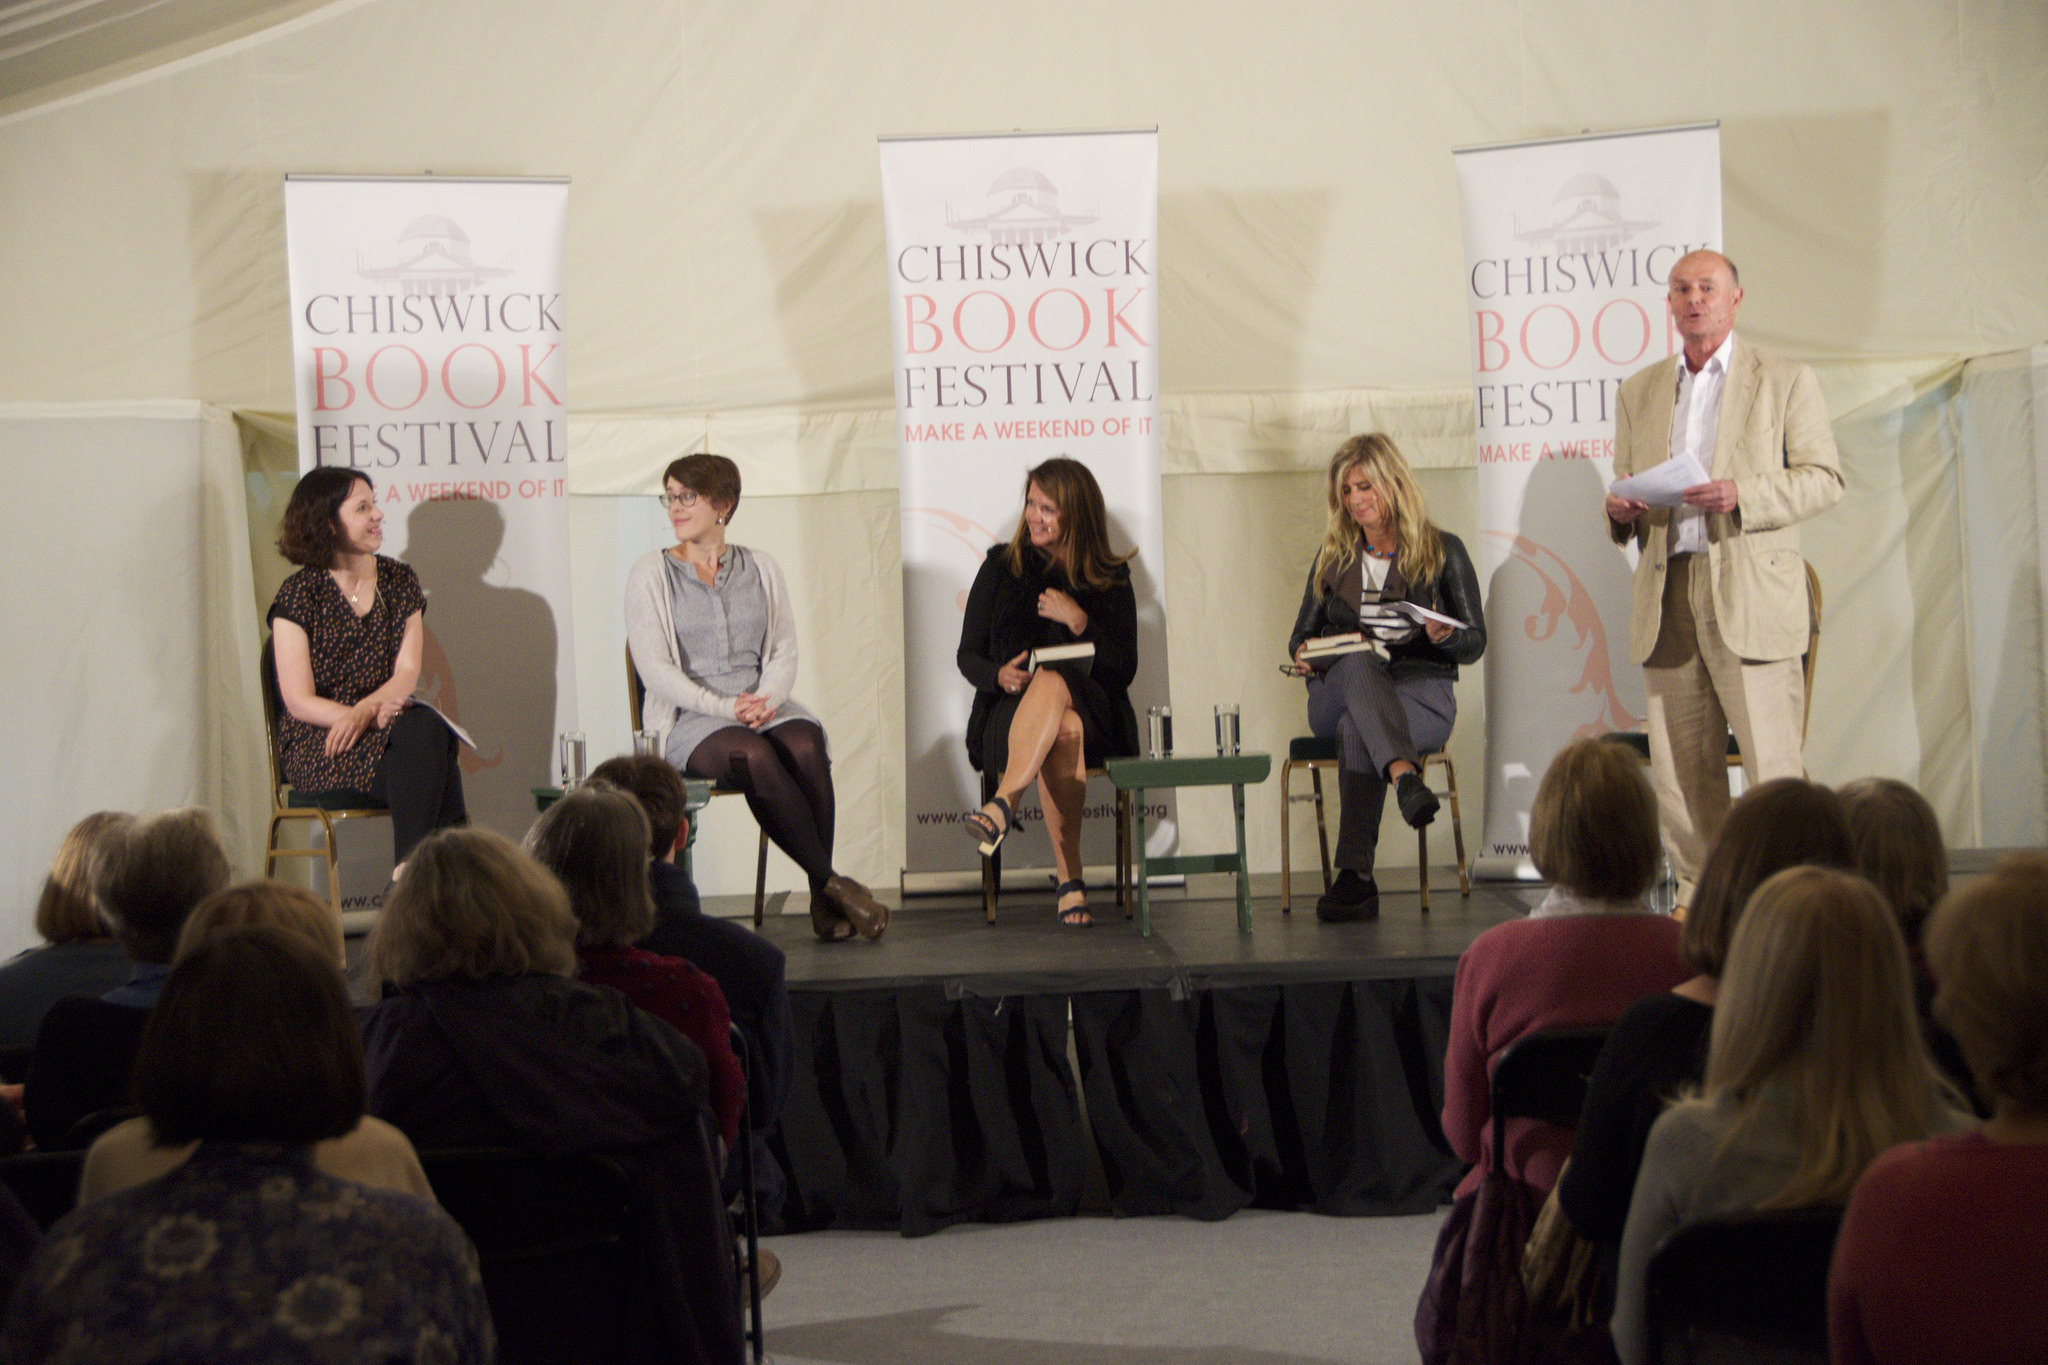 An Evening with Jane Austen at Chiswick House